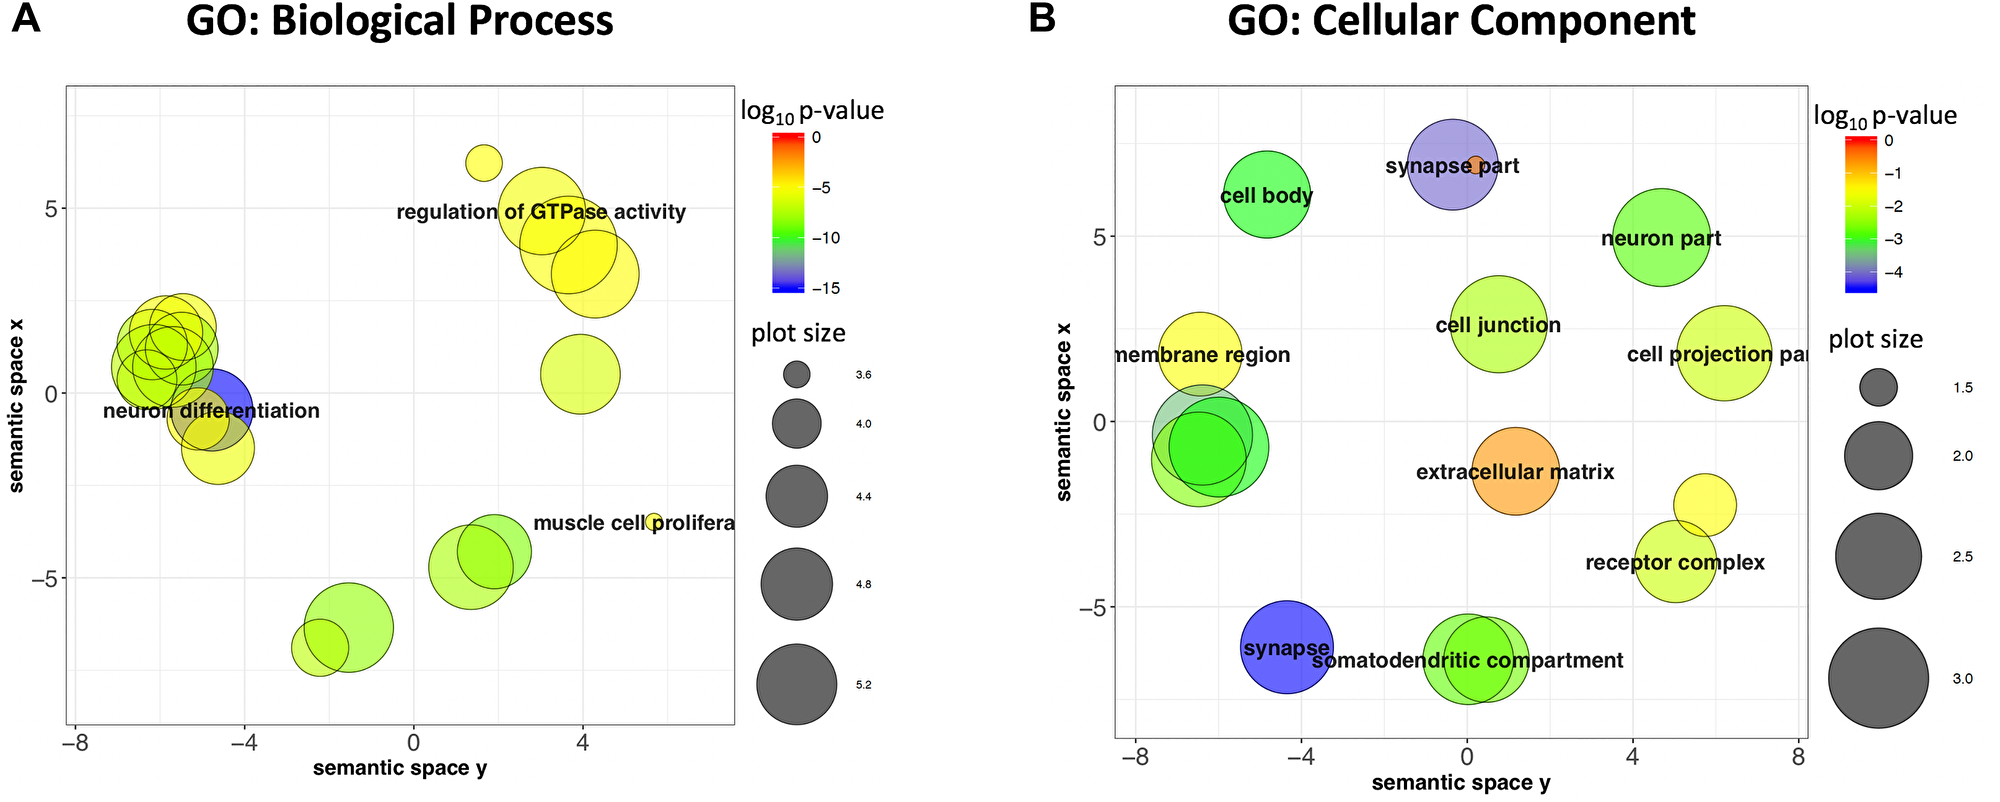 Genes closest to or overlapping target regions are enriched for Neuronal genes.